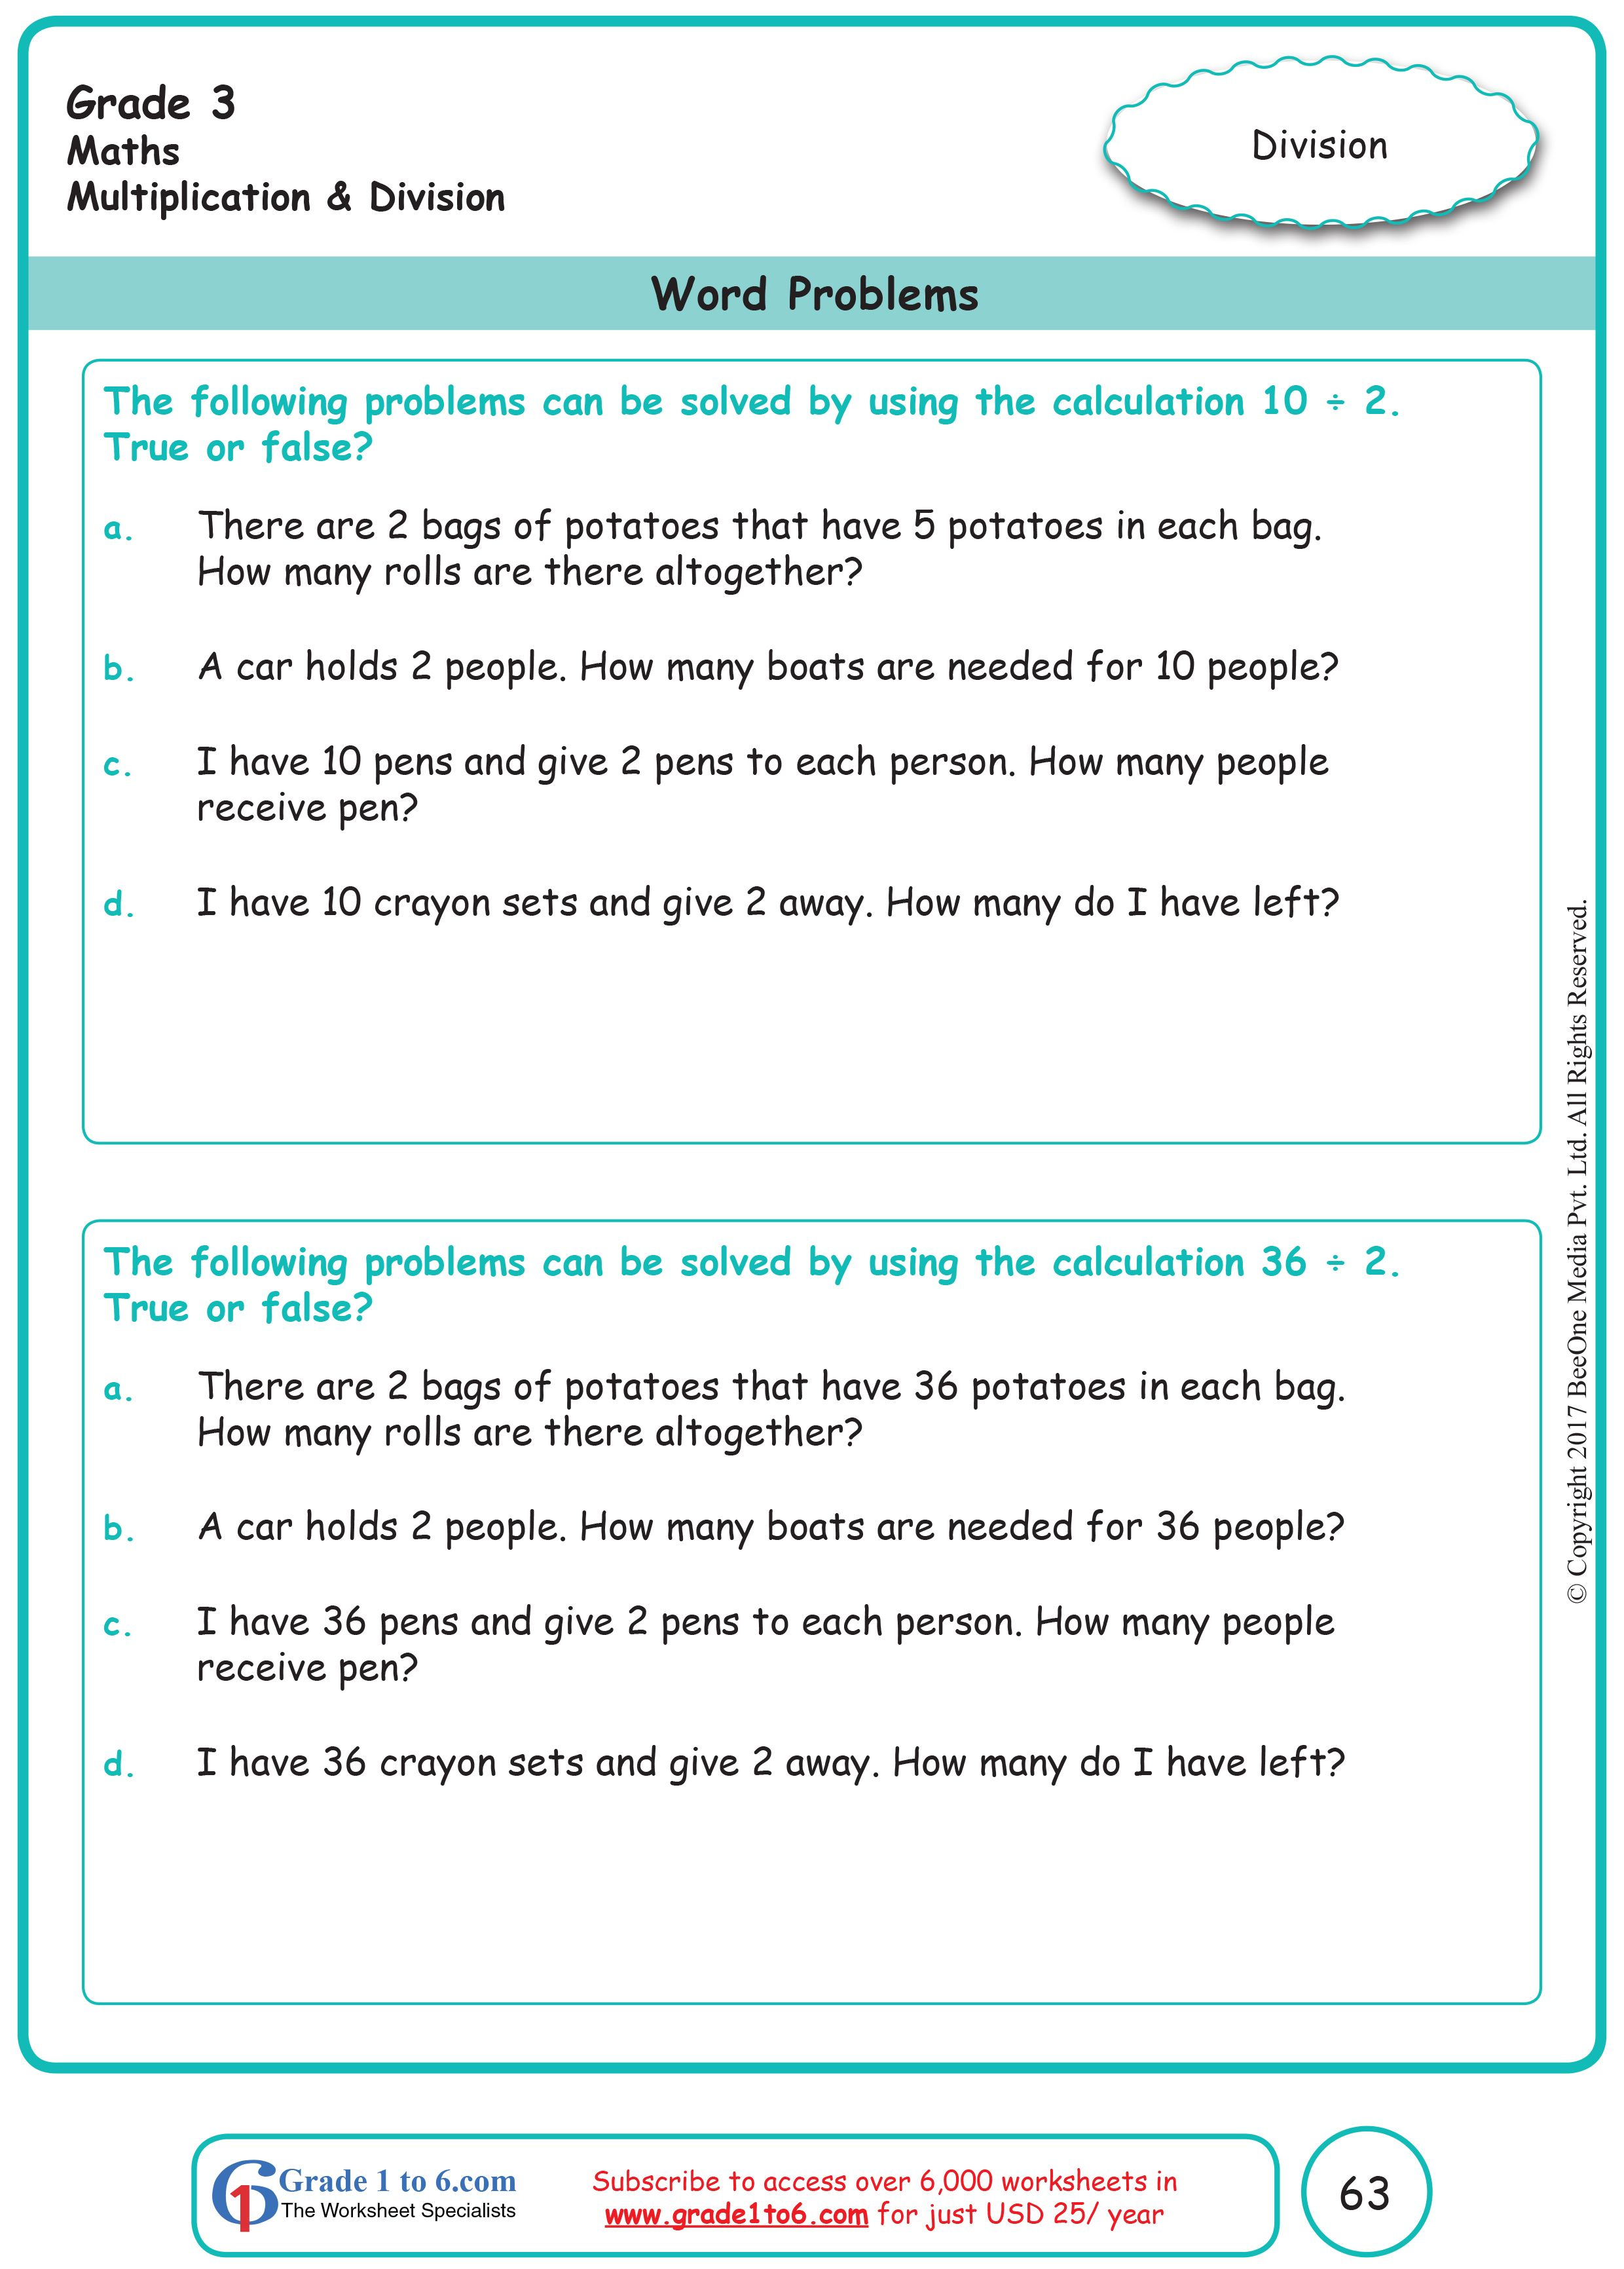 small resolution of Word Problems in Multiplication \u0026 Division Grade 3 Math   Free math  worksheets